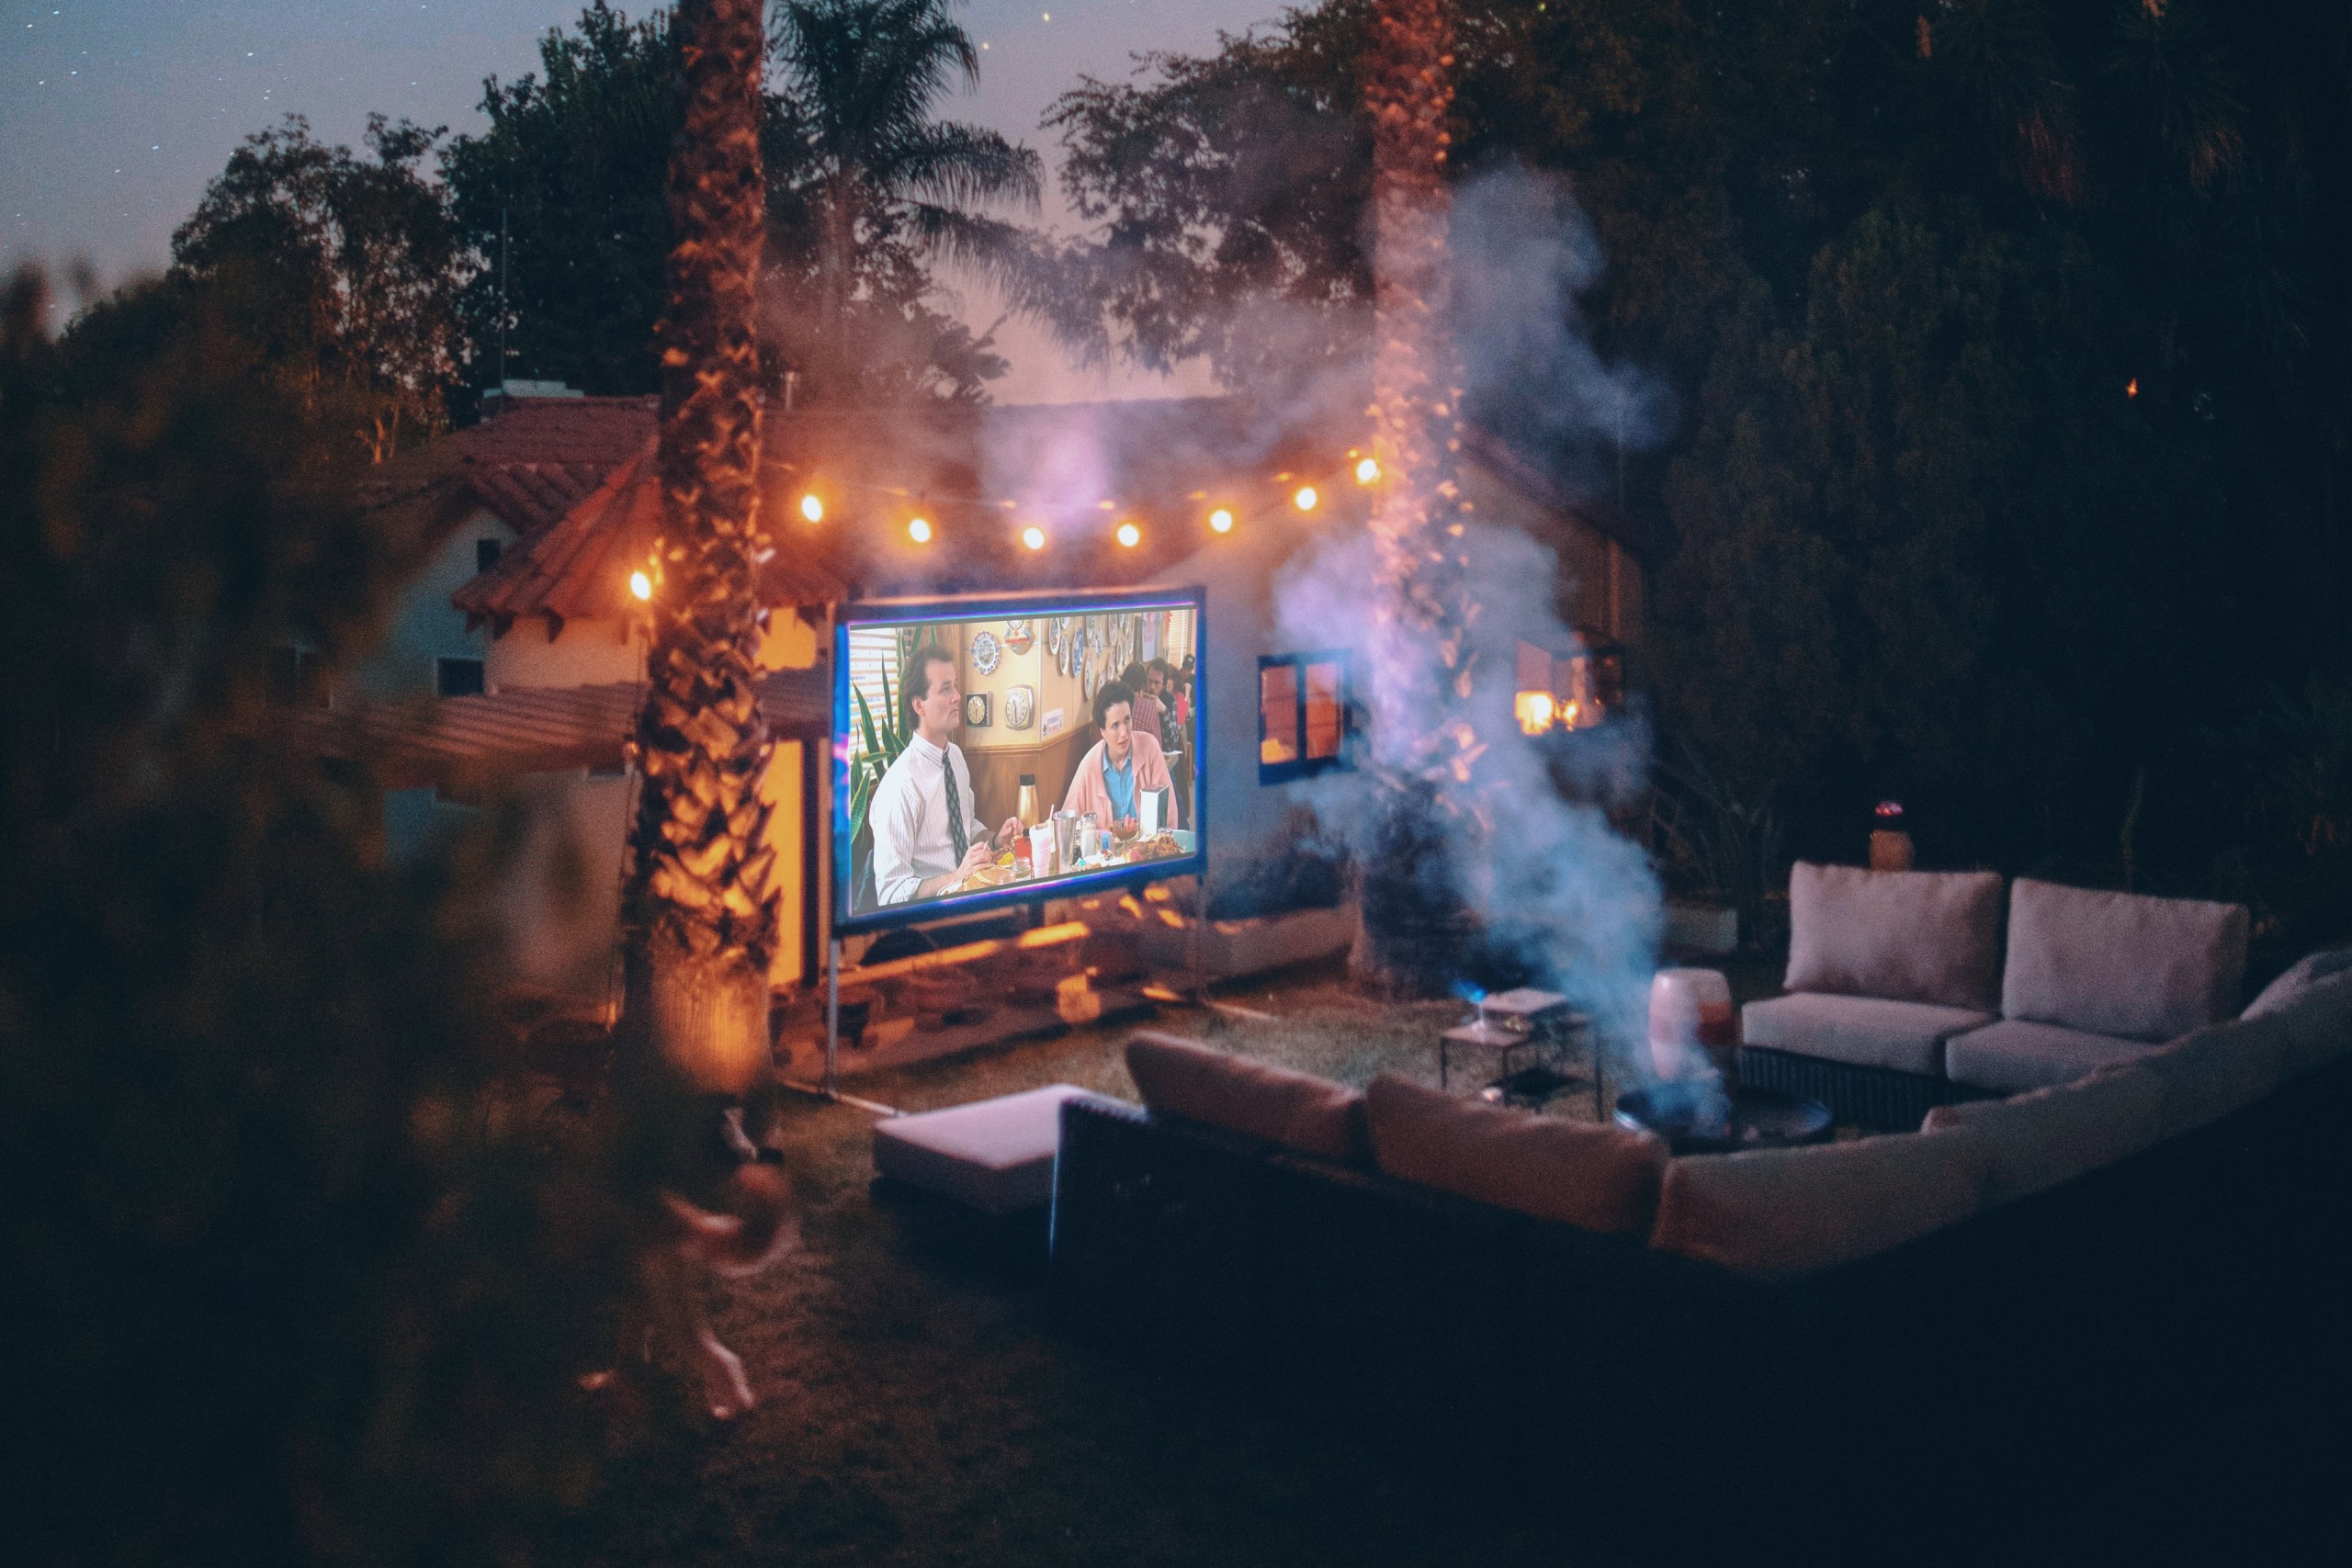 Movie Screen in backyard with Couch.